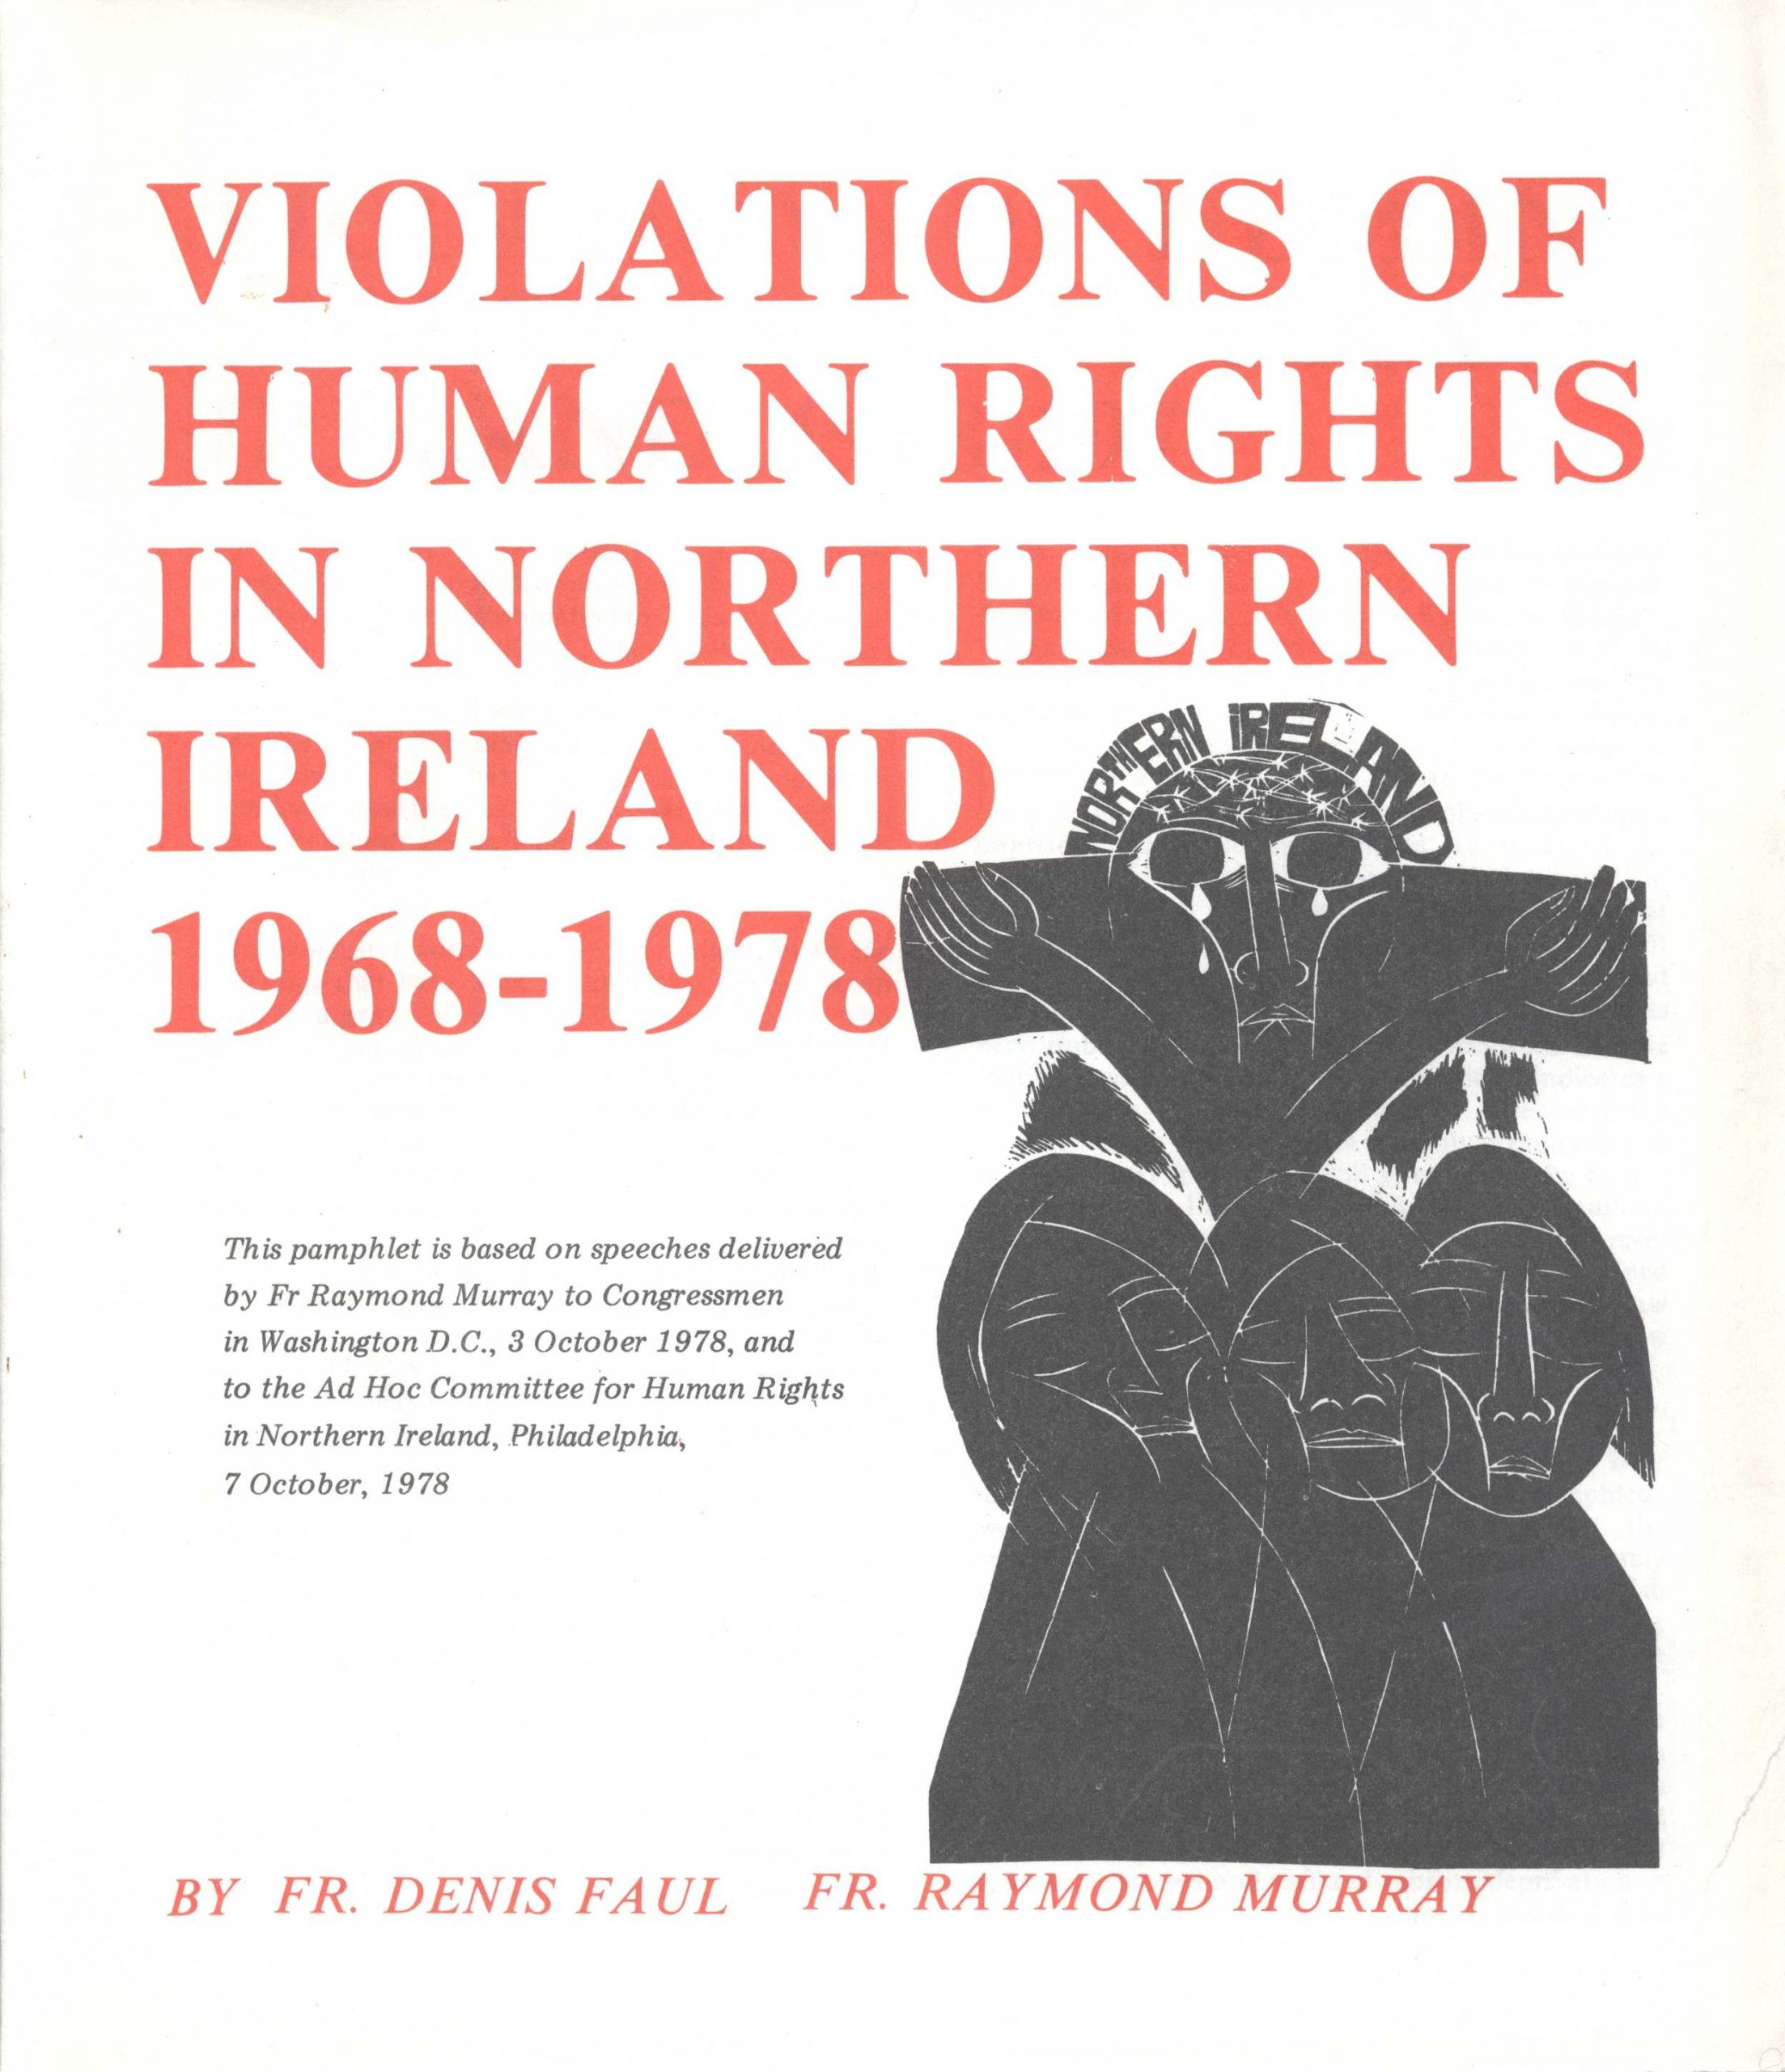 violations of human rights in northern ireland 1968-1978